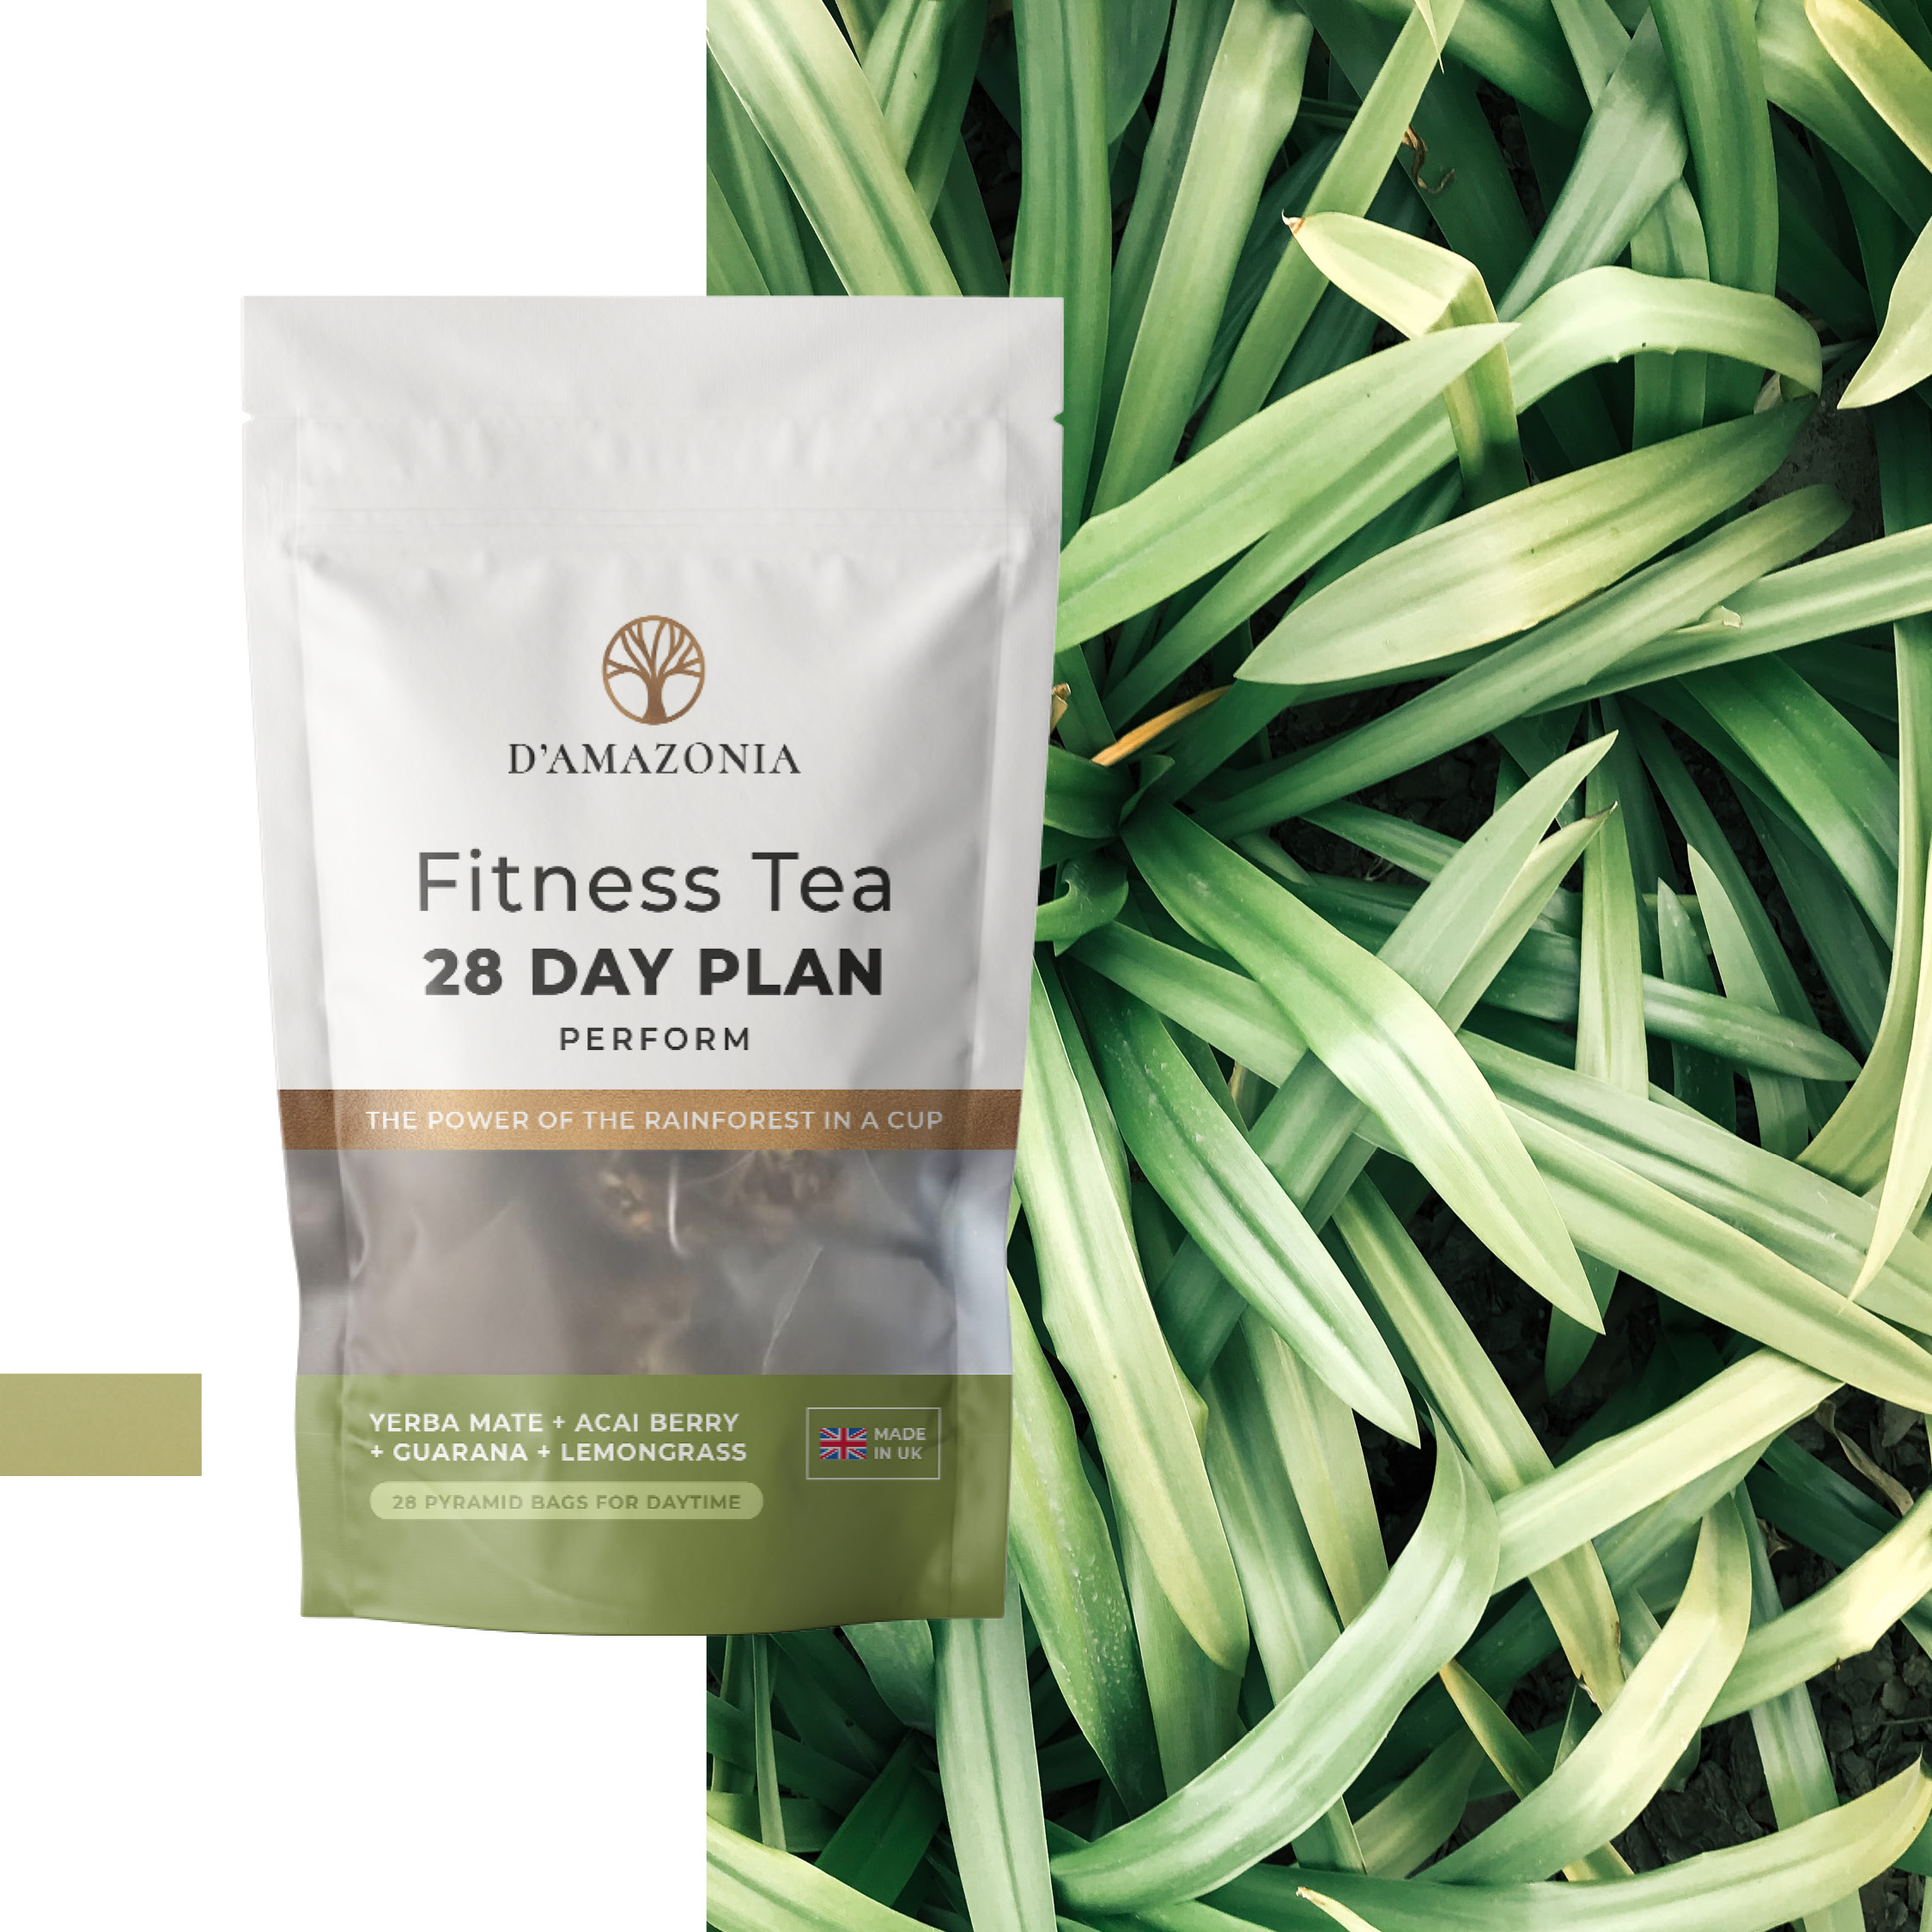 D'Amazonia Delivers All-Inclusive Christmas Hamper to Athletes With Their Fitness Tea